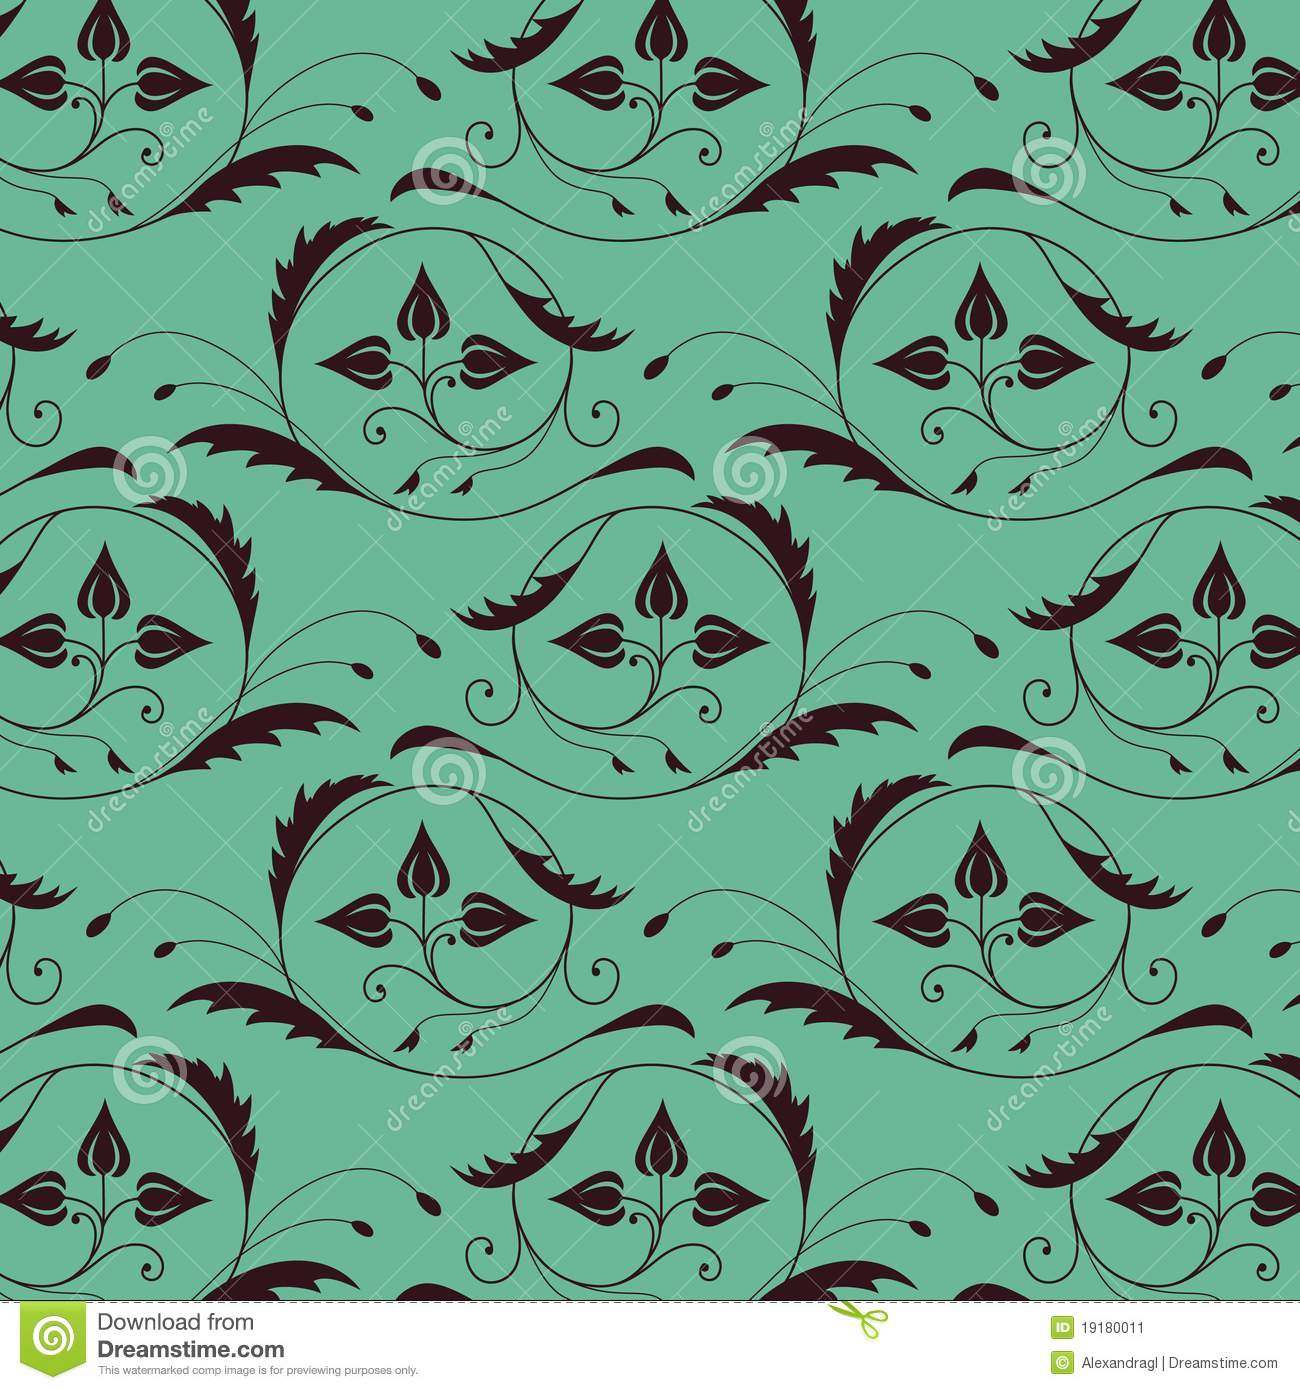 Seamless vintage pattern with color of sea